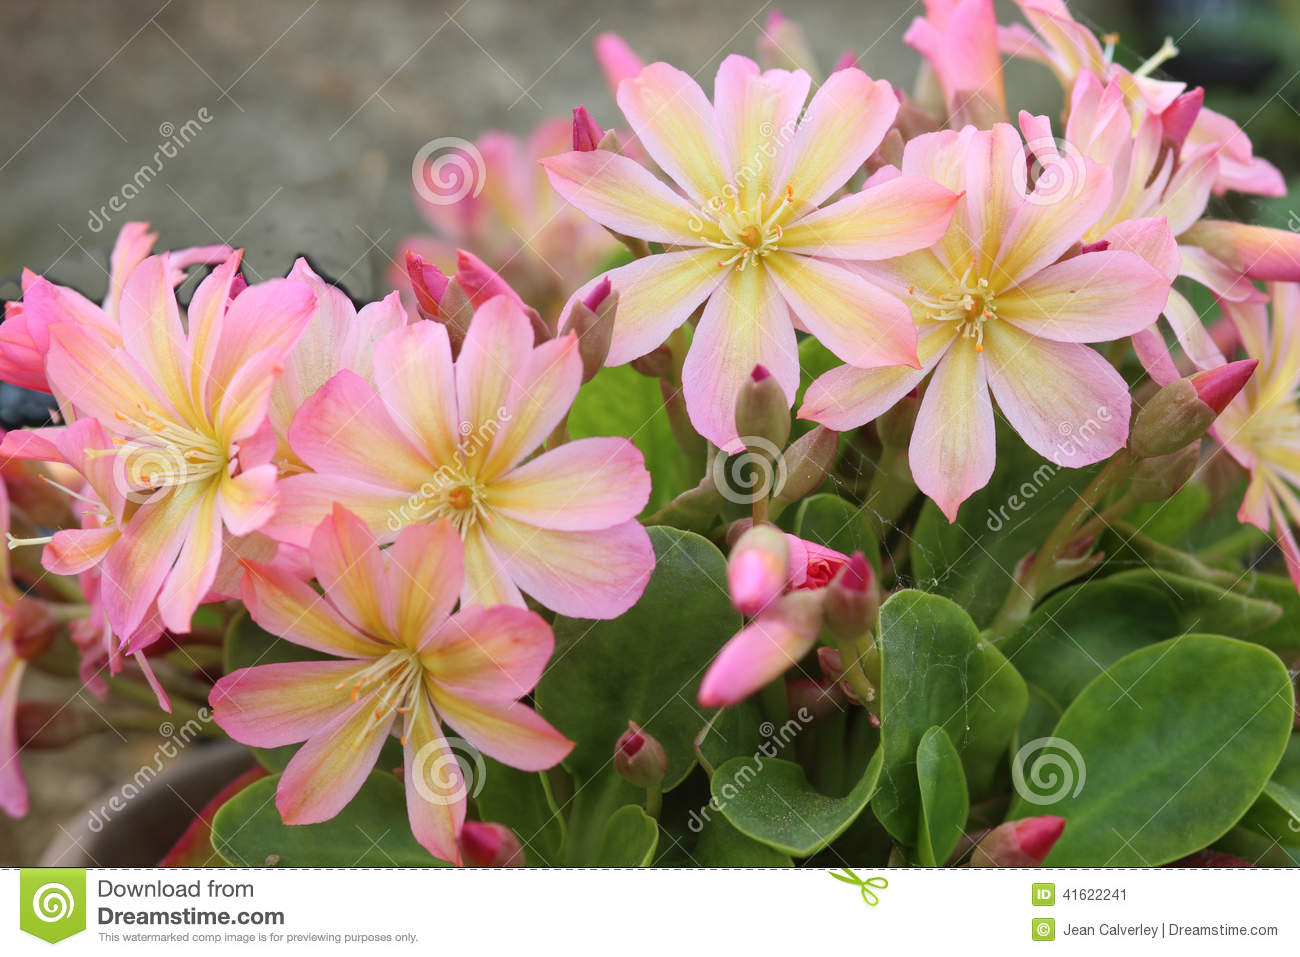 Pretty Pink Flowers Lewisia Twedei Rosa Stock Photo 41622241